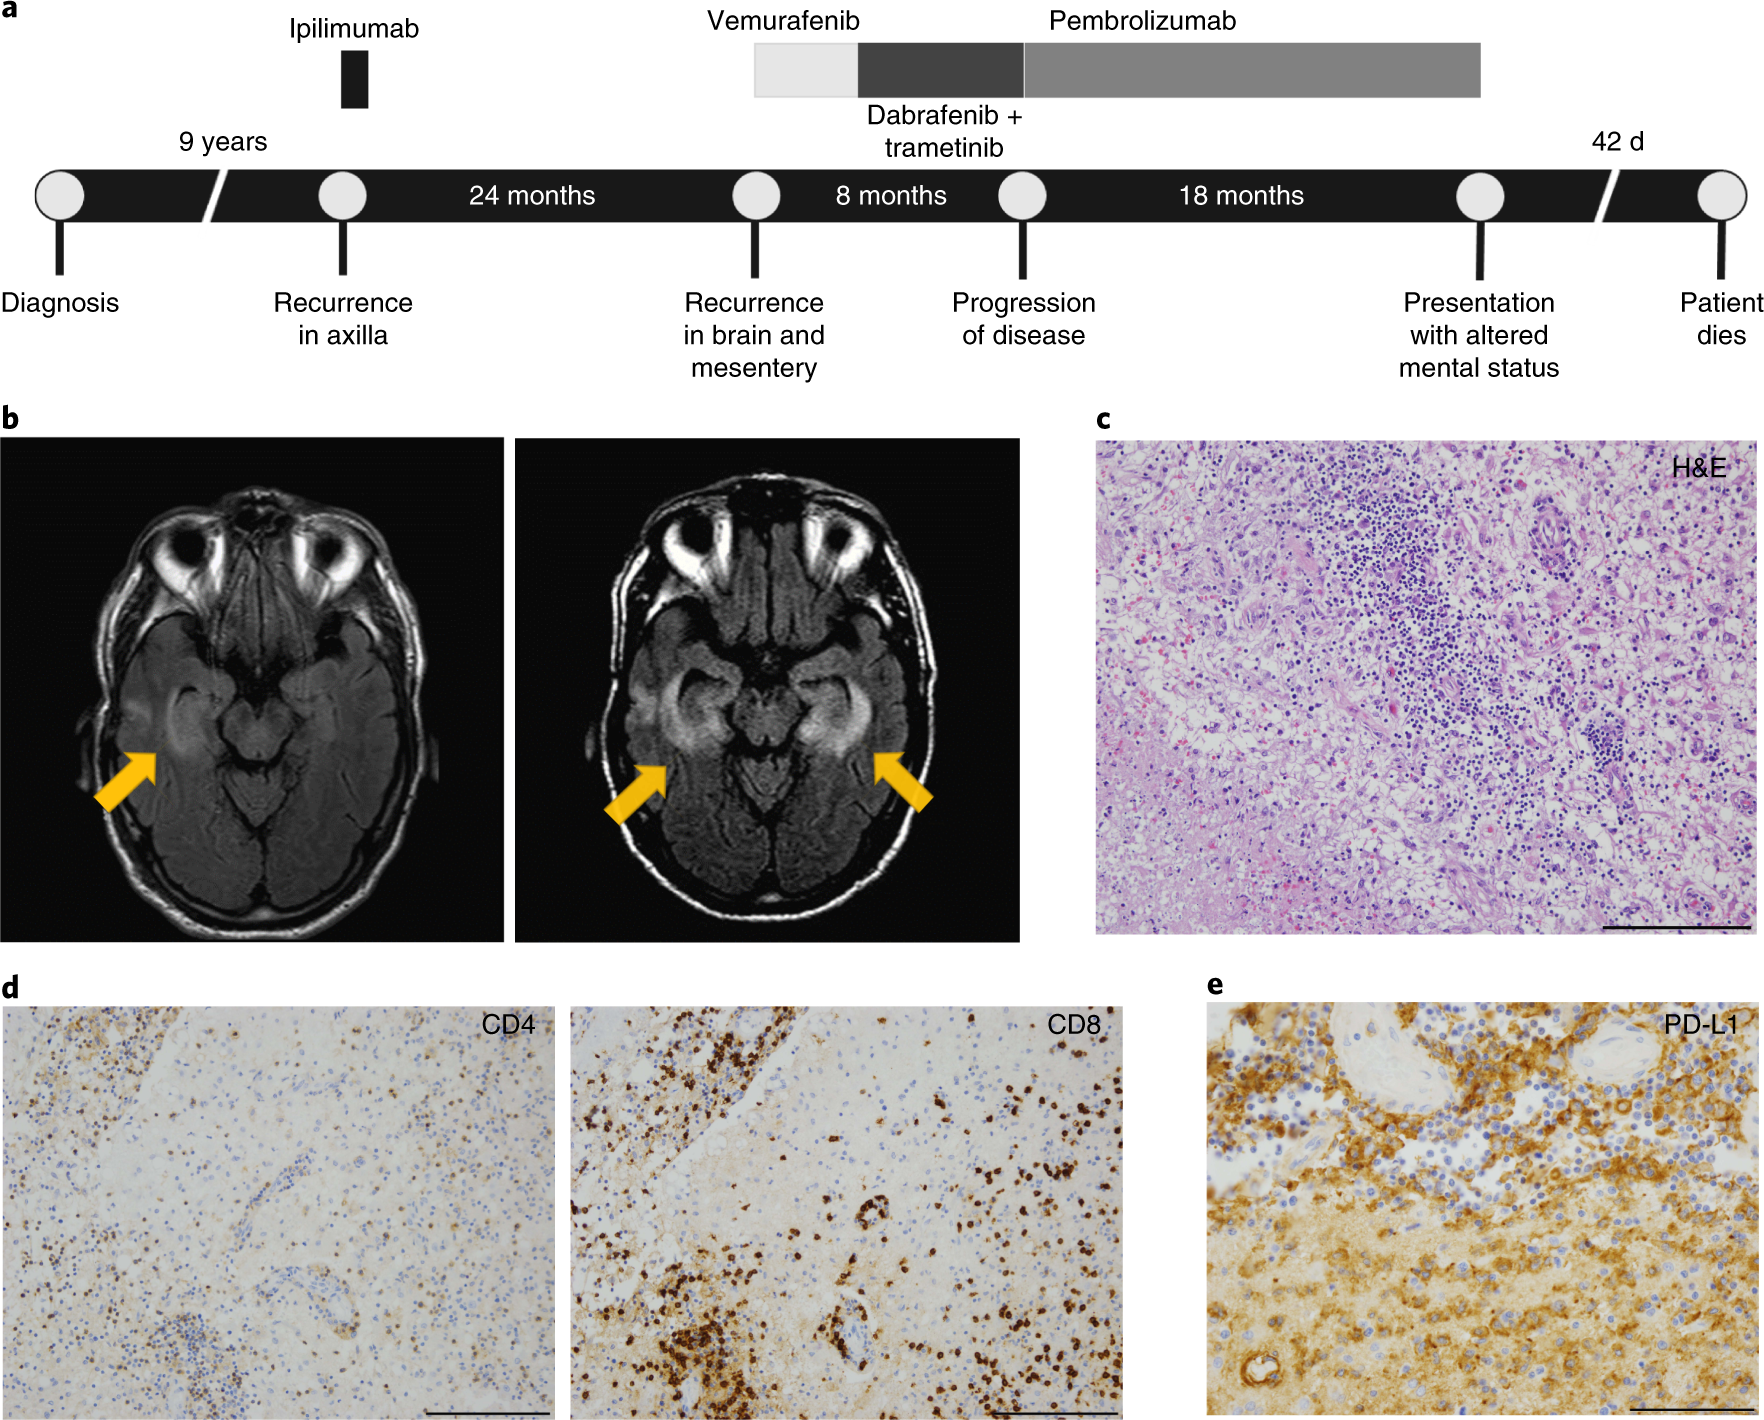 A case report of clonal EBV-like memory CD4 + T cell